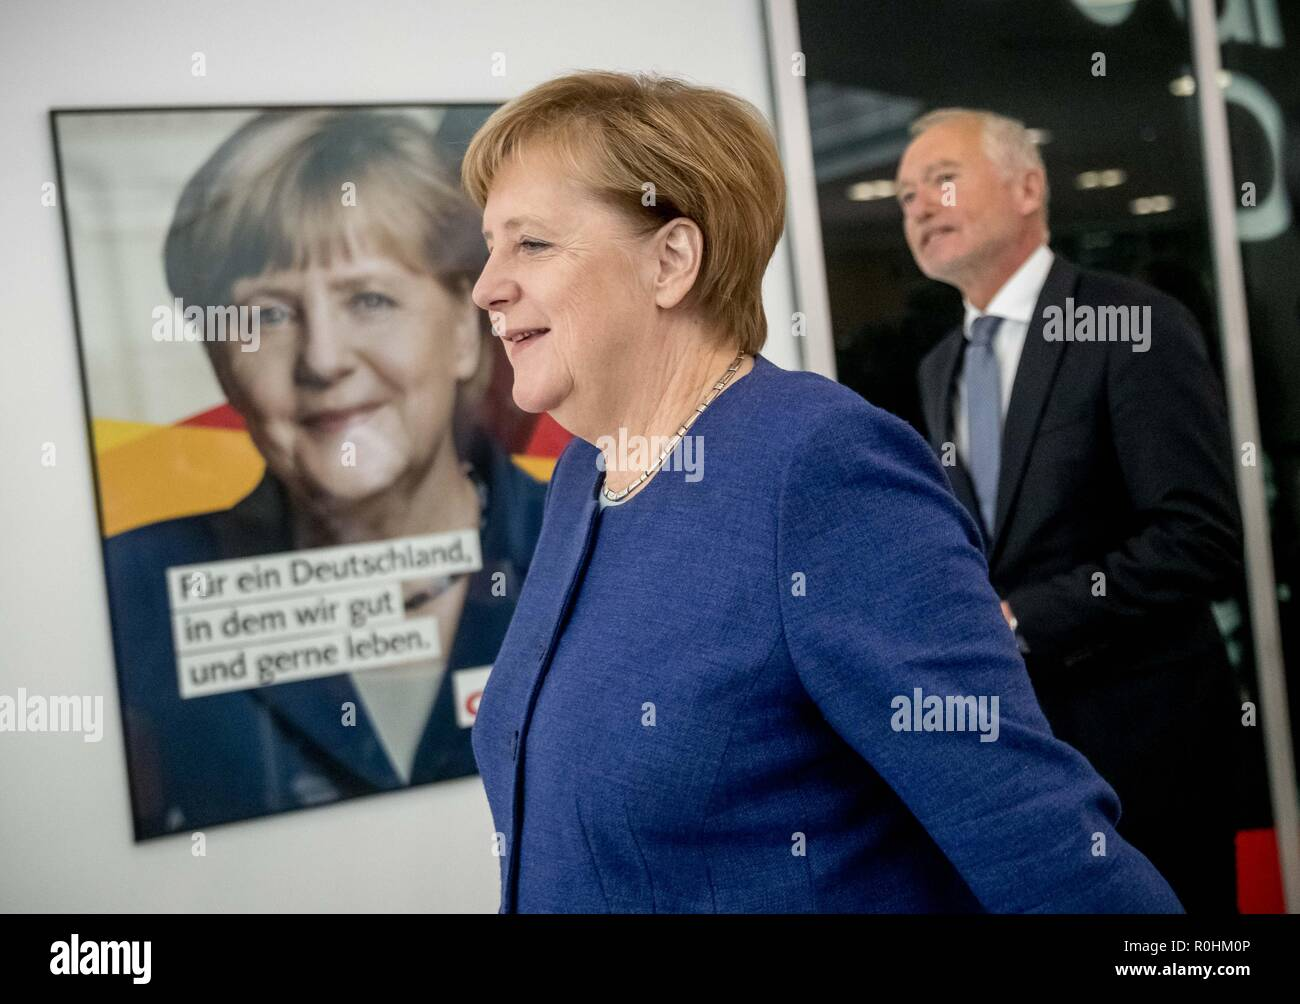 Berlin, Germany. 05th Nov, 2018. Federal Chancellor Angela Merkel (CDU) will attend a press conference at the CDU headquarters in the Konrad-Adenauer-Haus, together with Klaus Schüler, the CDU's Federal Managing Director, at which media representatives will be present. The topic was the results of the CDU retreat. Credit: Michael Kappeler/dpa/Alamy Live News - Stock Image